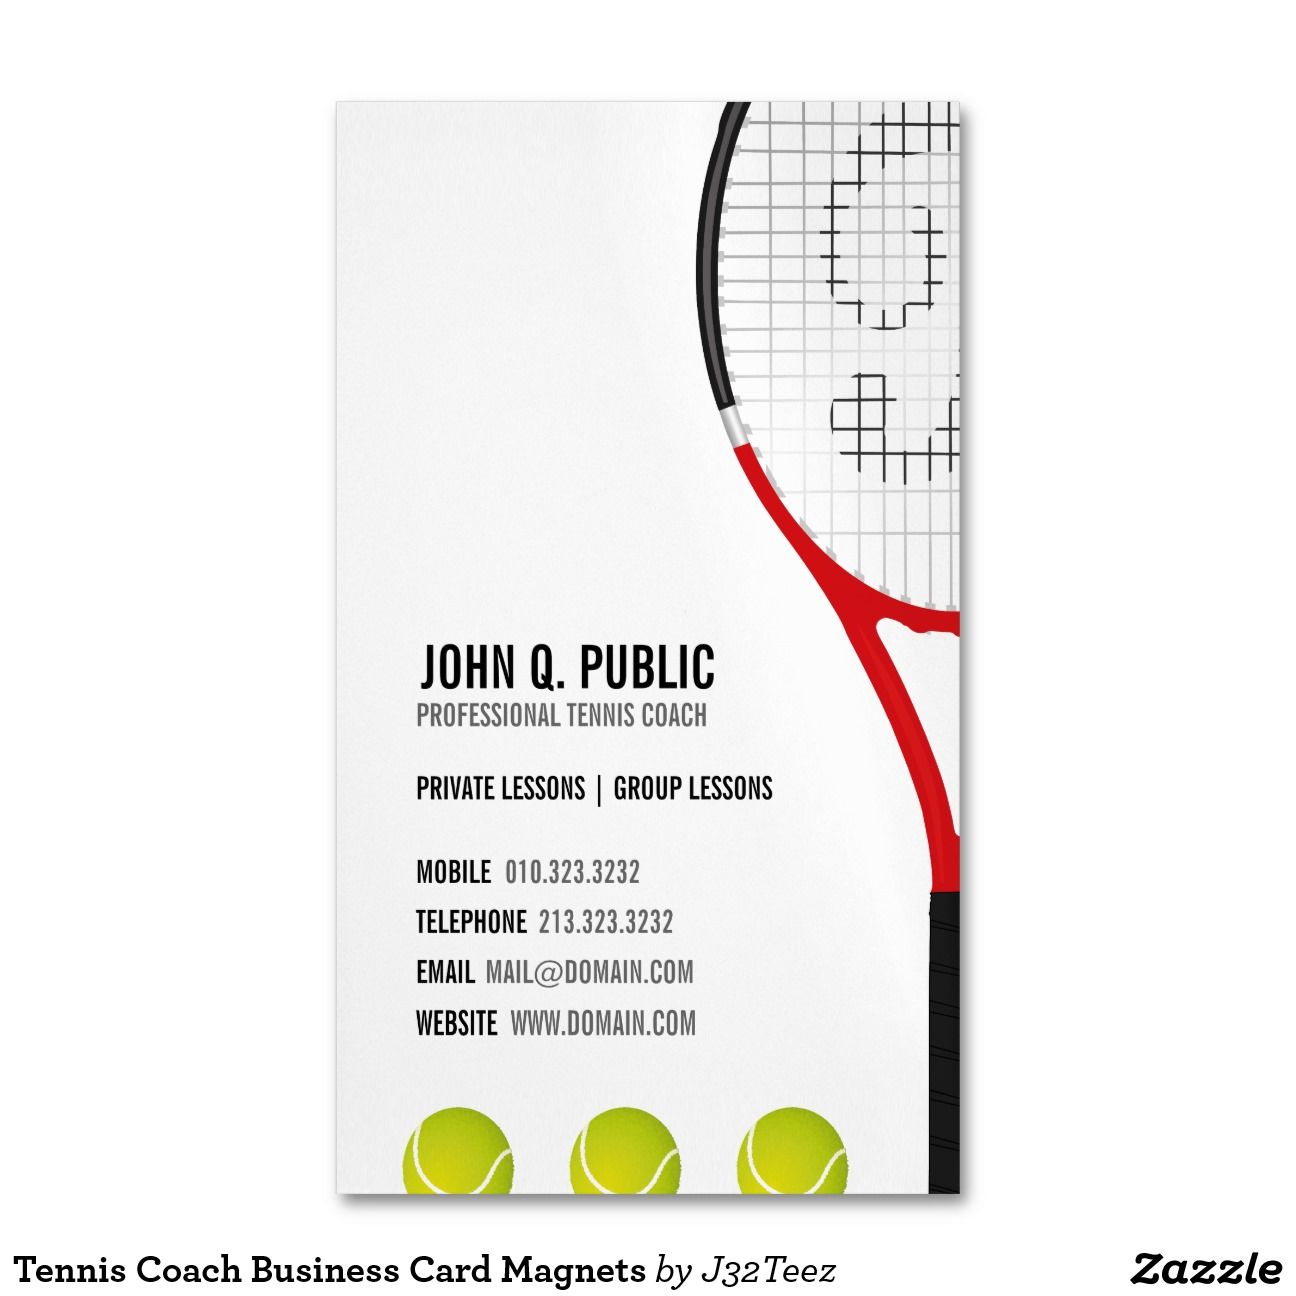 Tennis Coach Business Card Magnets | Magnetic business cards ...